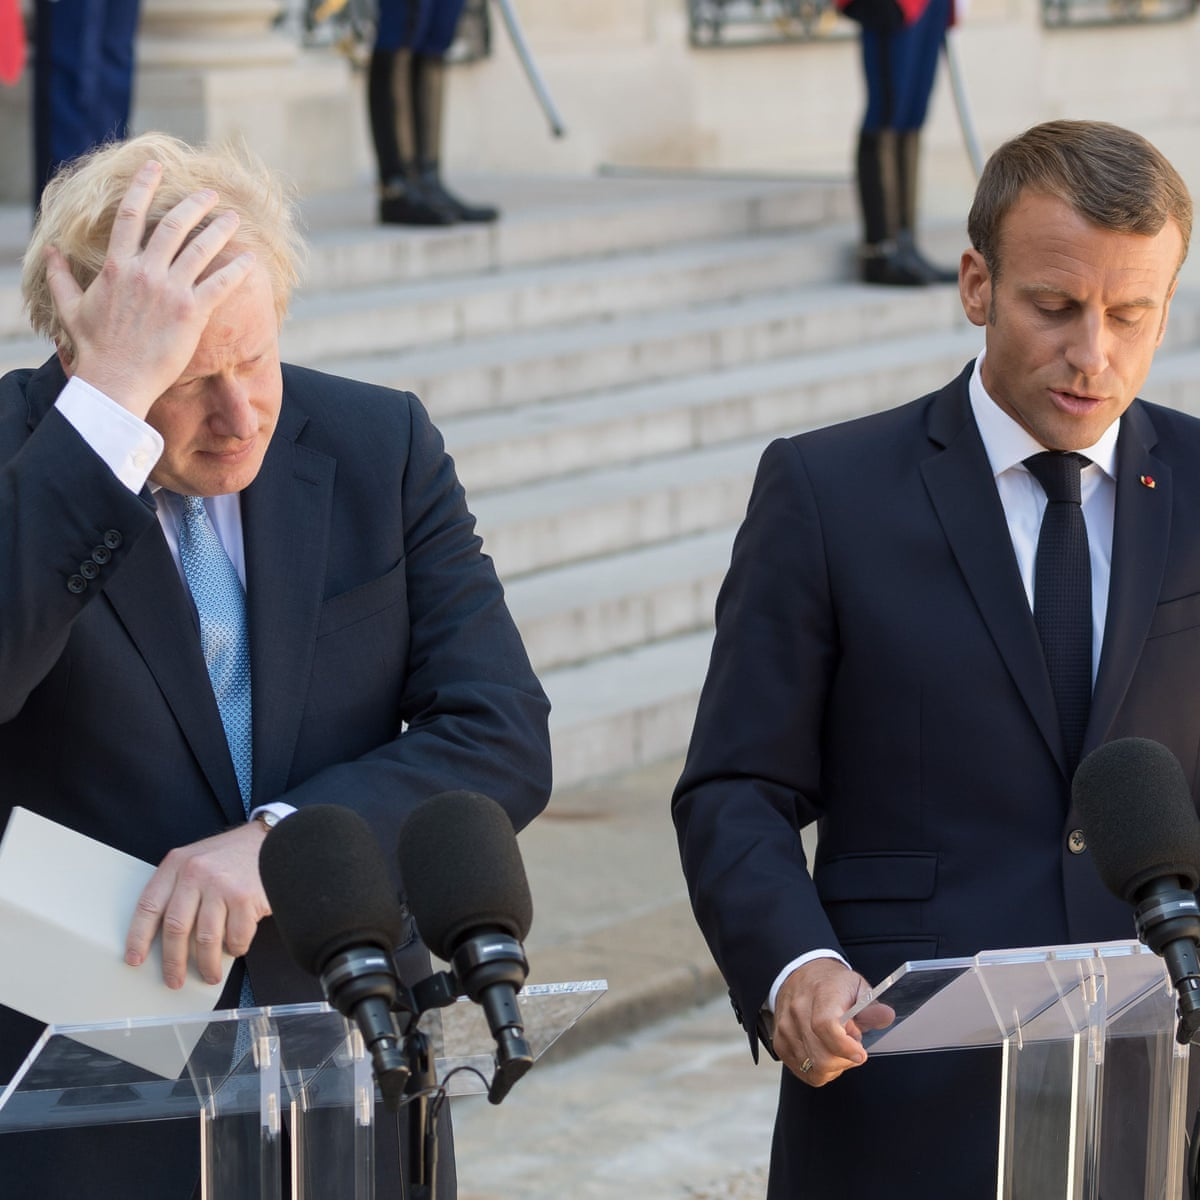 Emmanuel Macron Tells Boris Johnson Any New Brexit Deal Would Have To Be Very Similar To Existing One Live Politics The Guardian